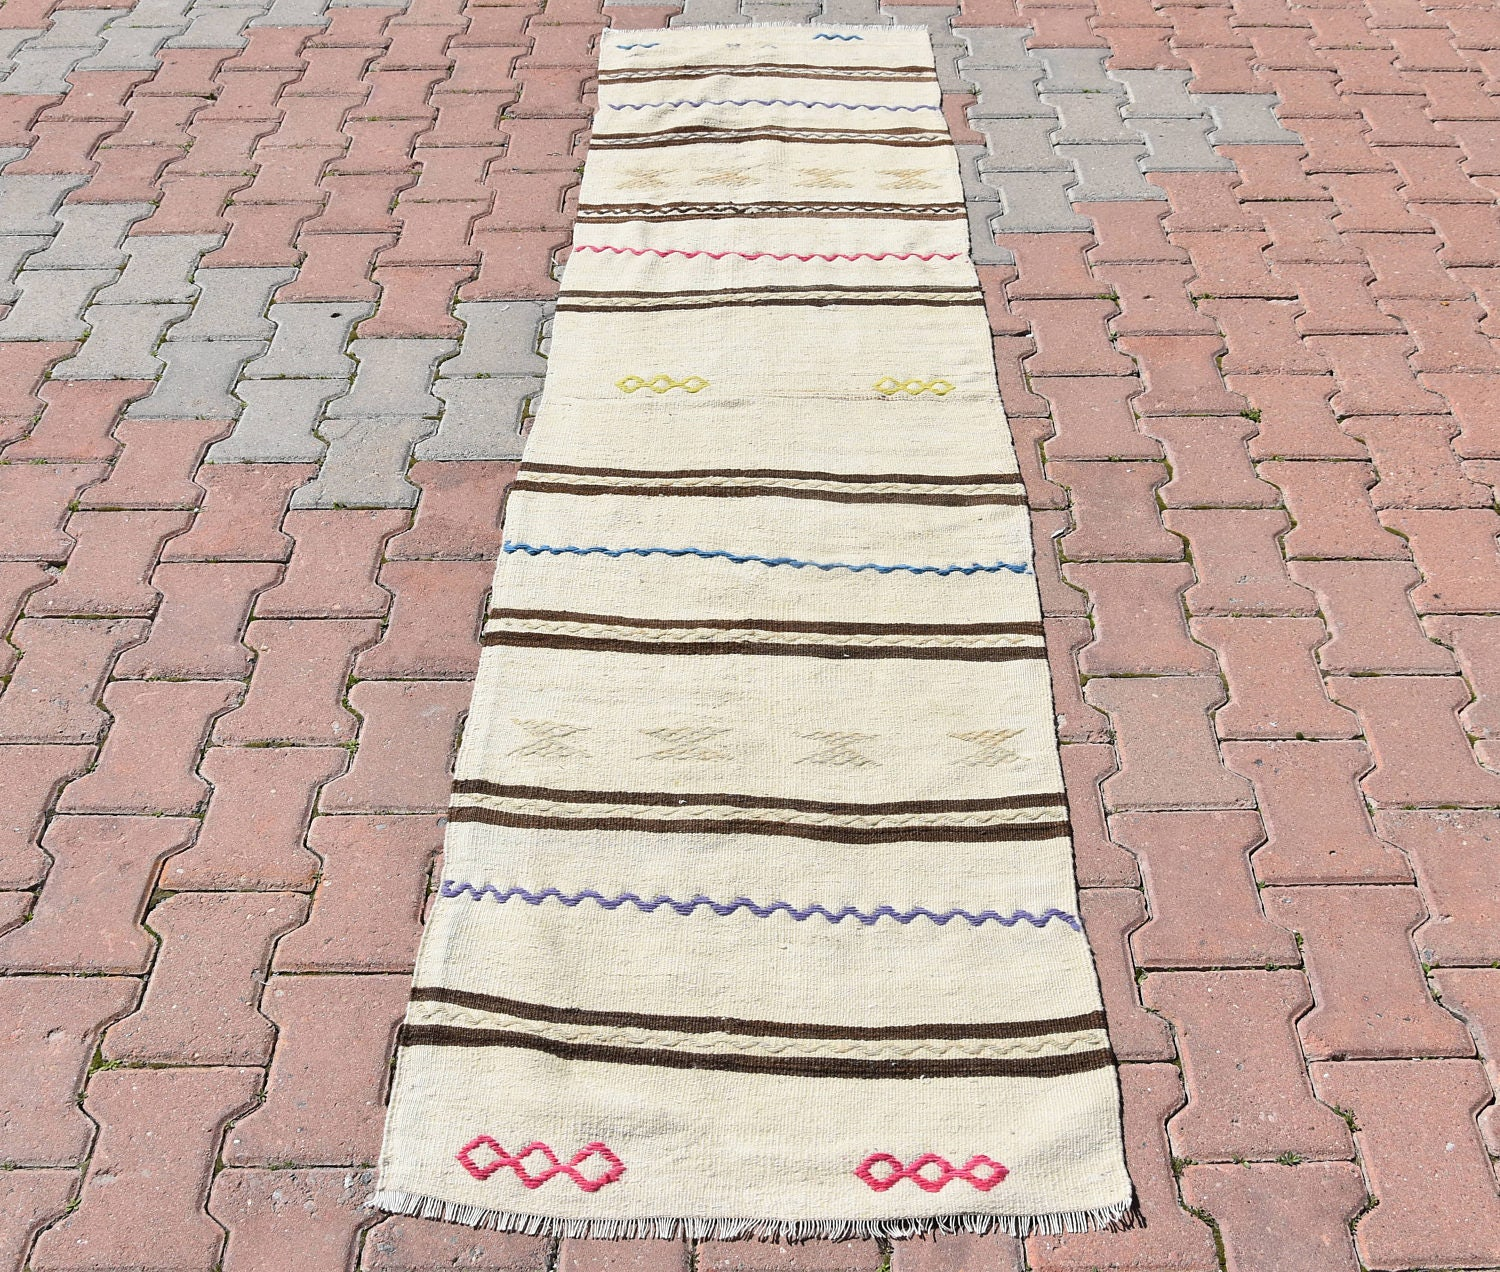 Striped Runner Hand Woven Cream Kilim Runner Rug Hallway